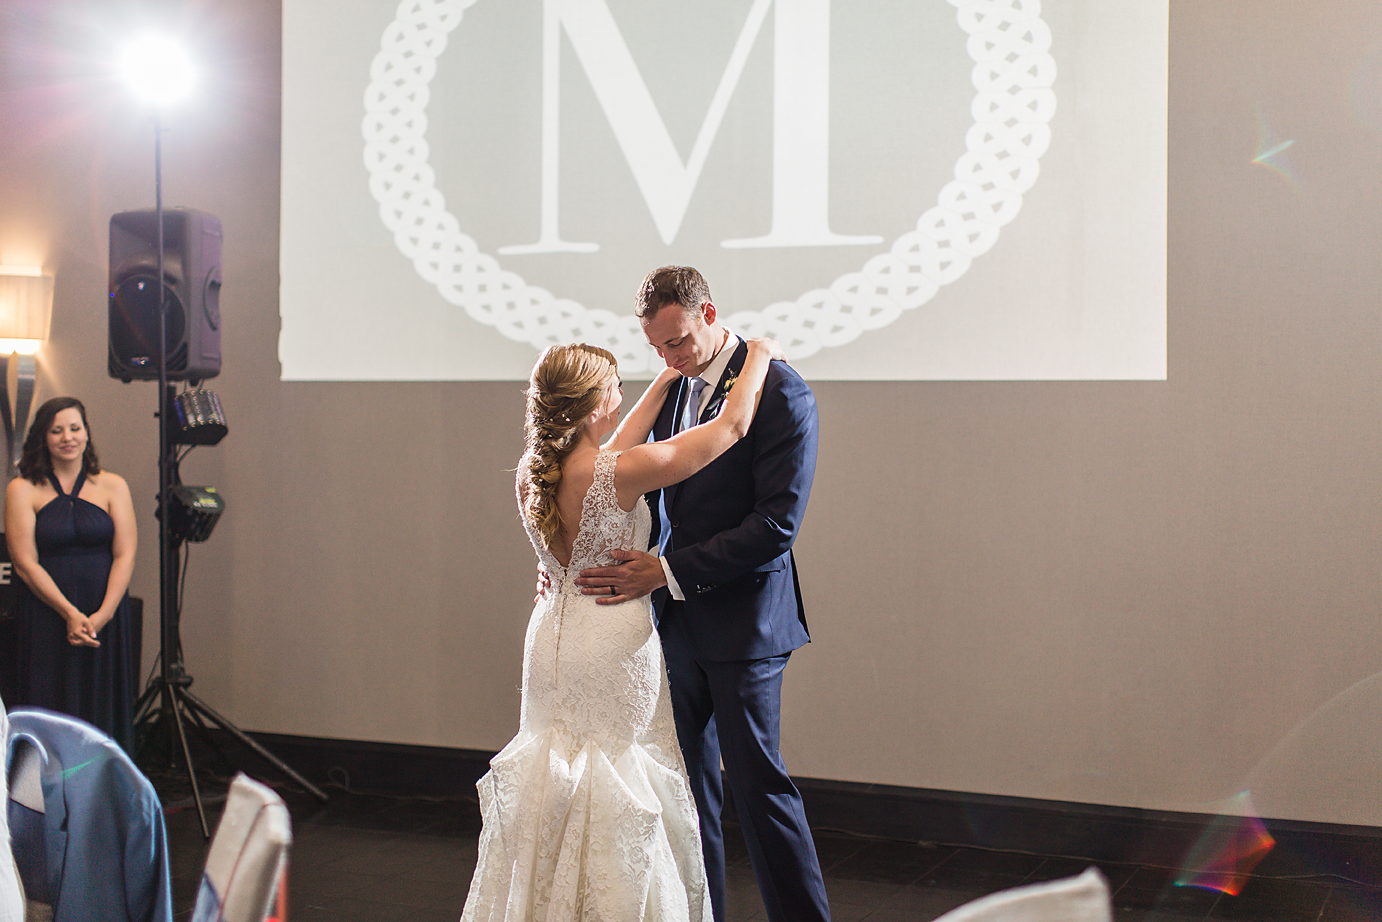 Dallas Wedding Photographer Greenville SC Embassy Suites Riverfront scottish wedding bride and groom first dance kate marie portraiture.png